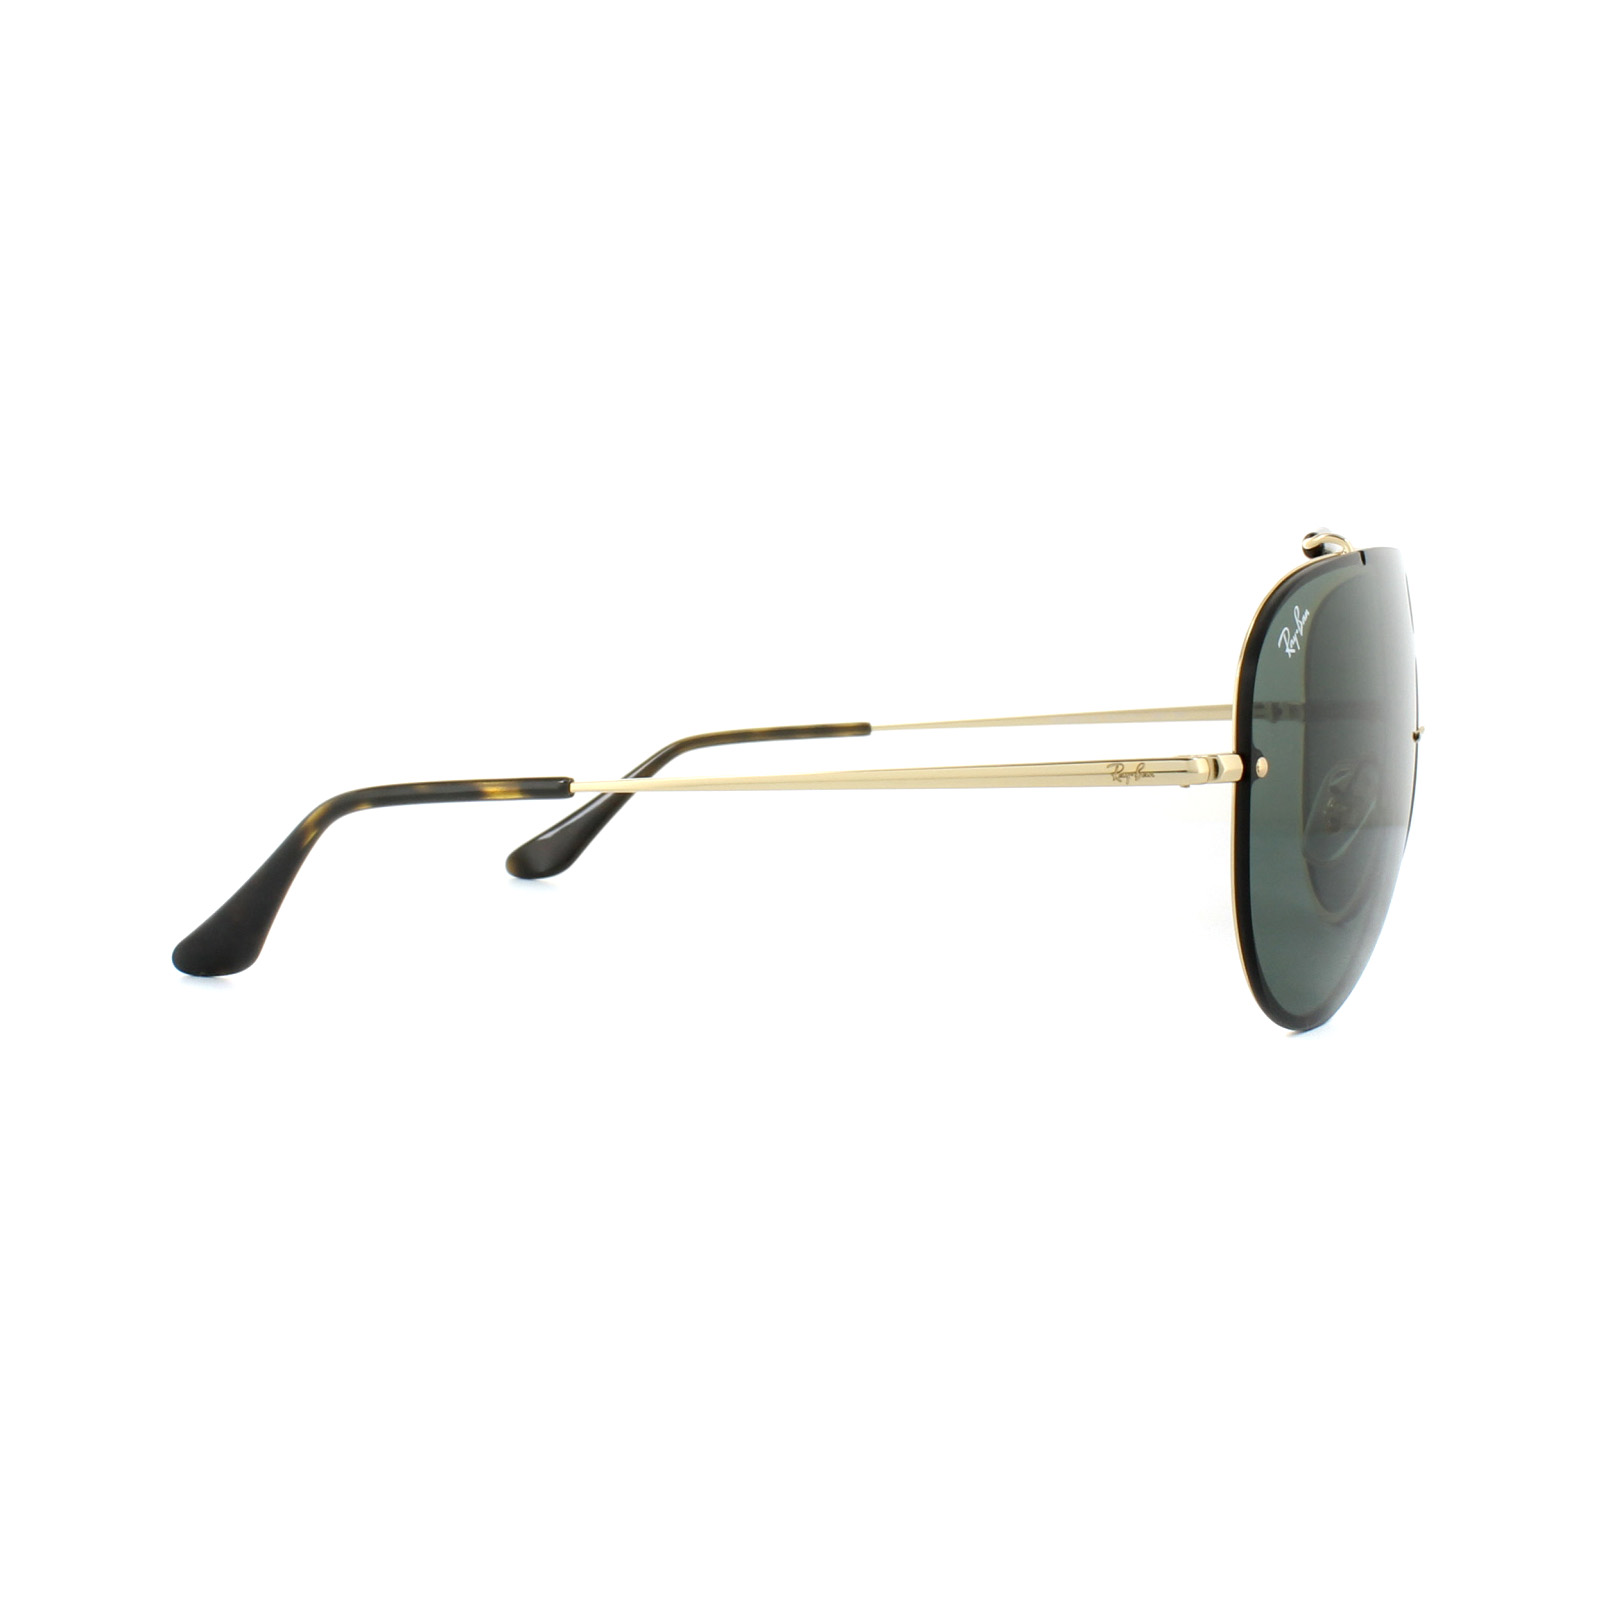 87cd8167be Sentinel Ray-Ban Sunglasses Blaze Shooter 3581N 001 71 Gold Green